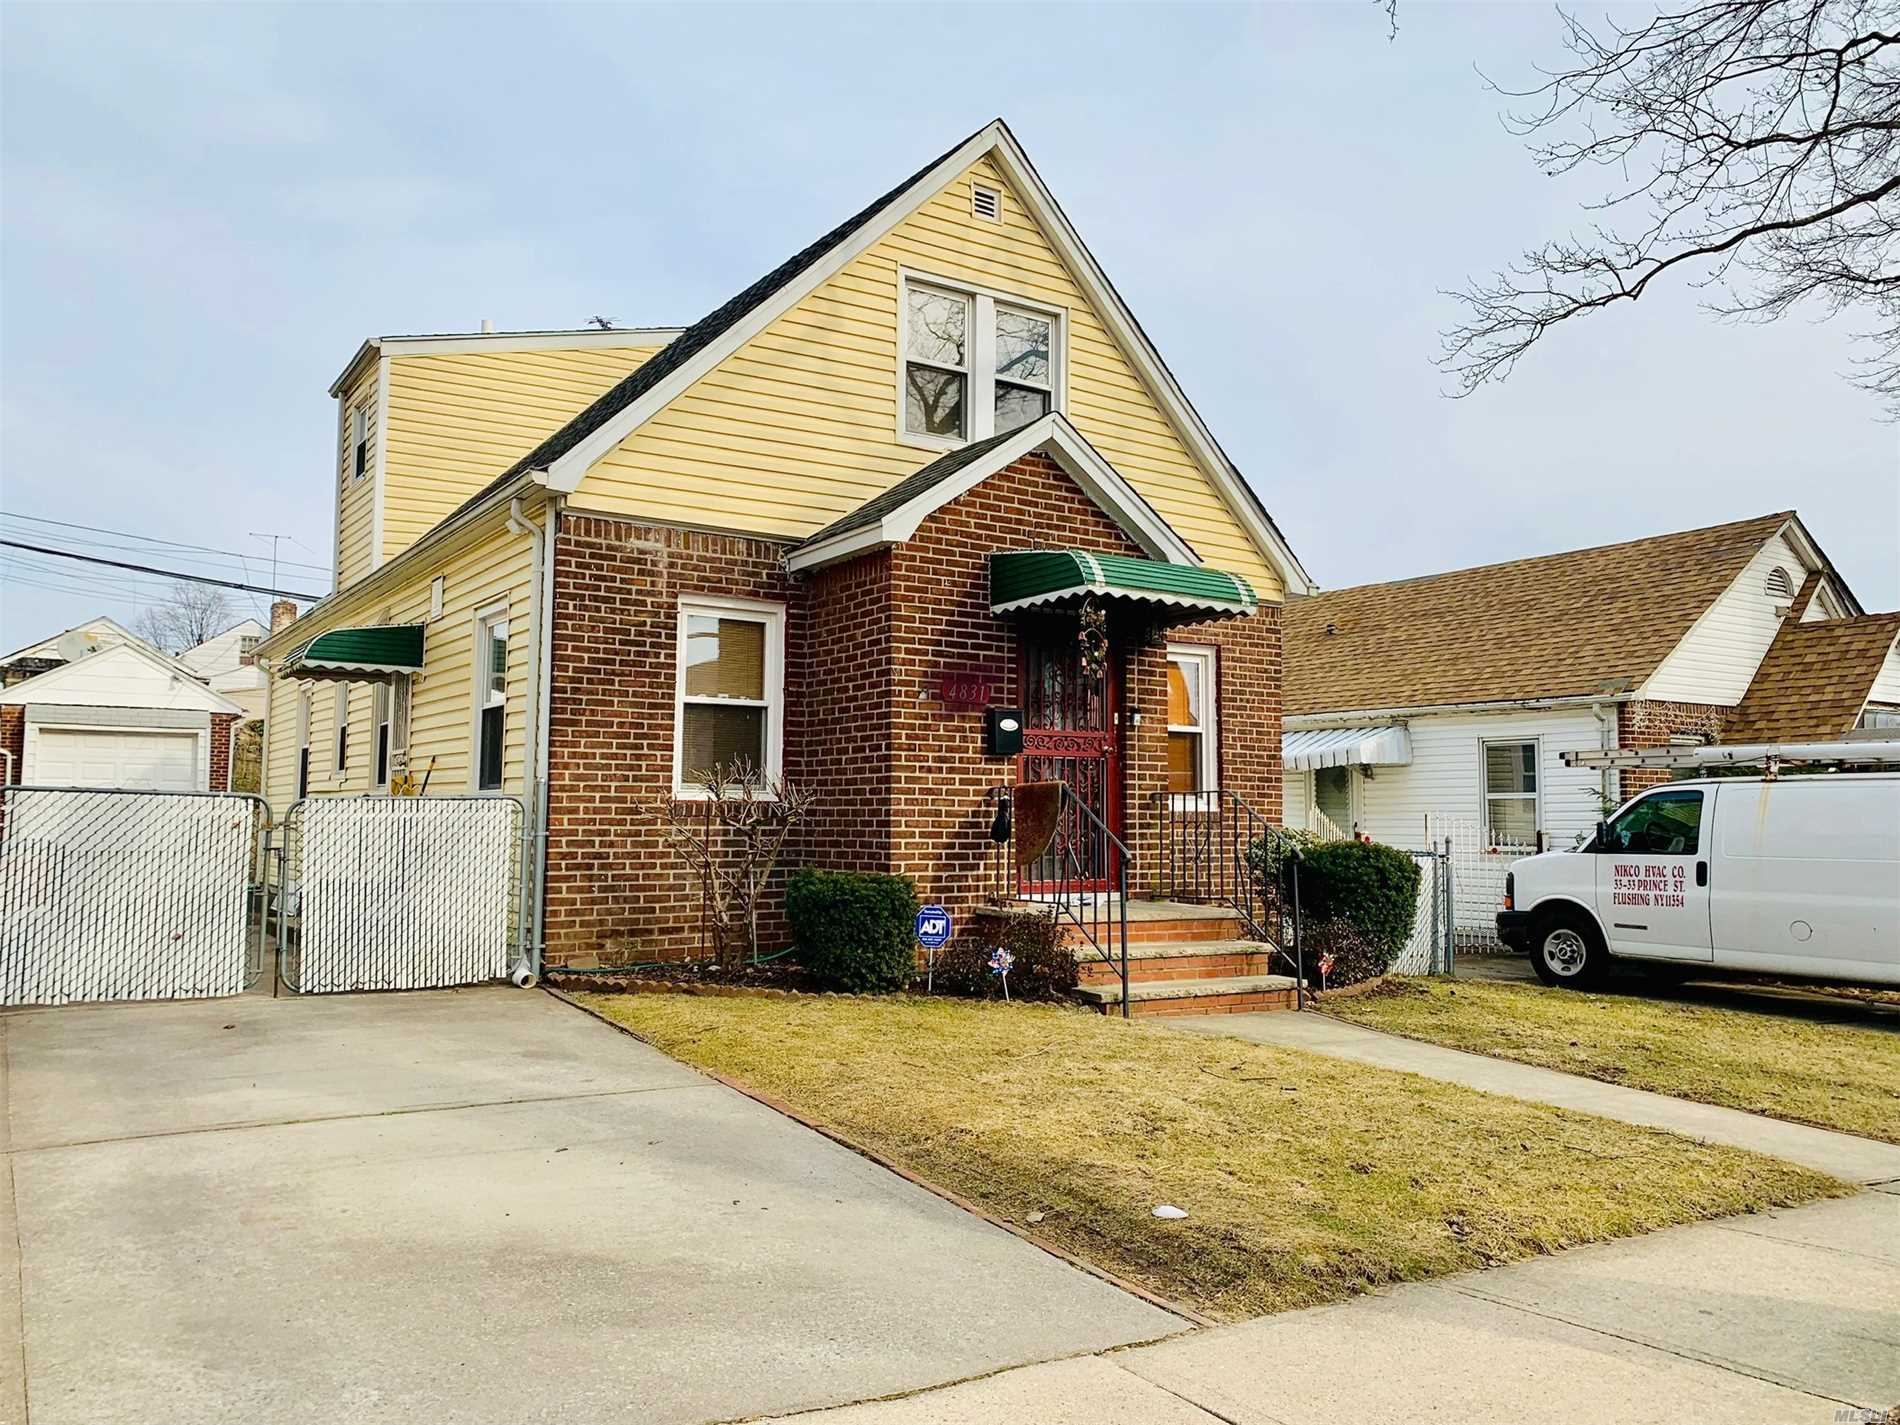 Newly Renovated Charming Oversized 1 Family In Heart Of Fresh Meadows. Lot Size Is 40X100. Building Size Is 22X38.5. Private Driveway With Garage. It Features Oversized 4 Bedroom With High Ceiling On The 2nd Fl, 2Full Ba, Lr And Kitchen. Updates Baths, Kitchen, Hardwood Floor, Basement, Boiler, Electric Wires And Circuit Box And Split Unit A/C Were Done 4.5 Years Ago. Great School District Zoned In #26. Just Mins Away From Bus, I495, Park, School And Supermarkets Etc....